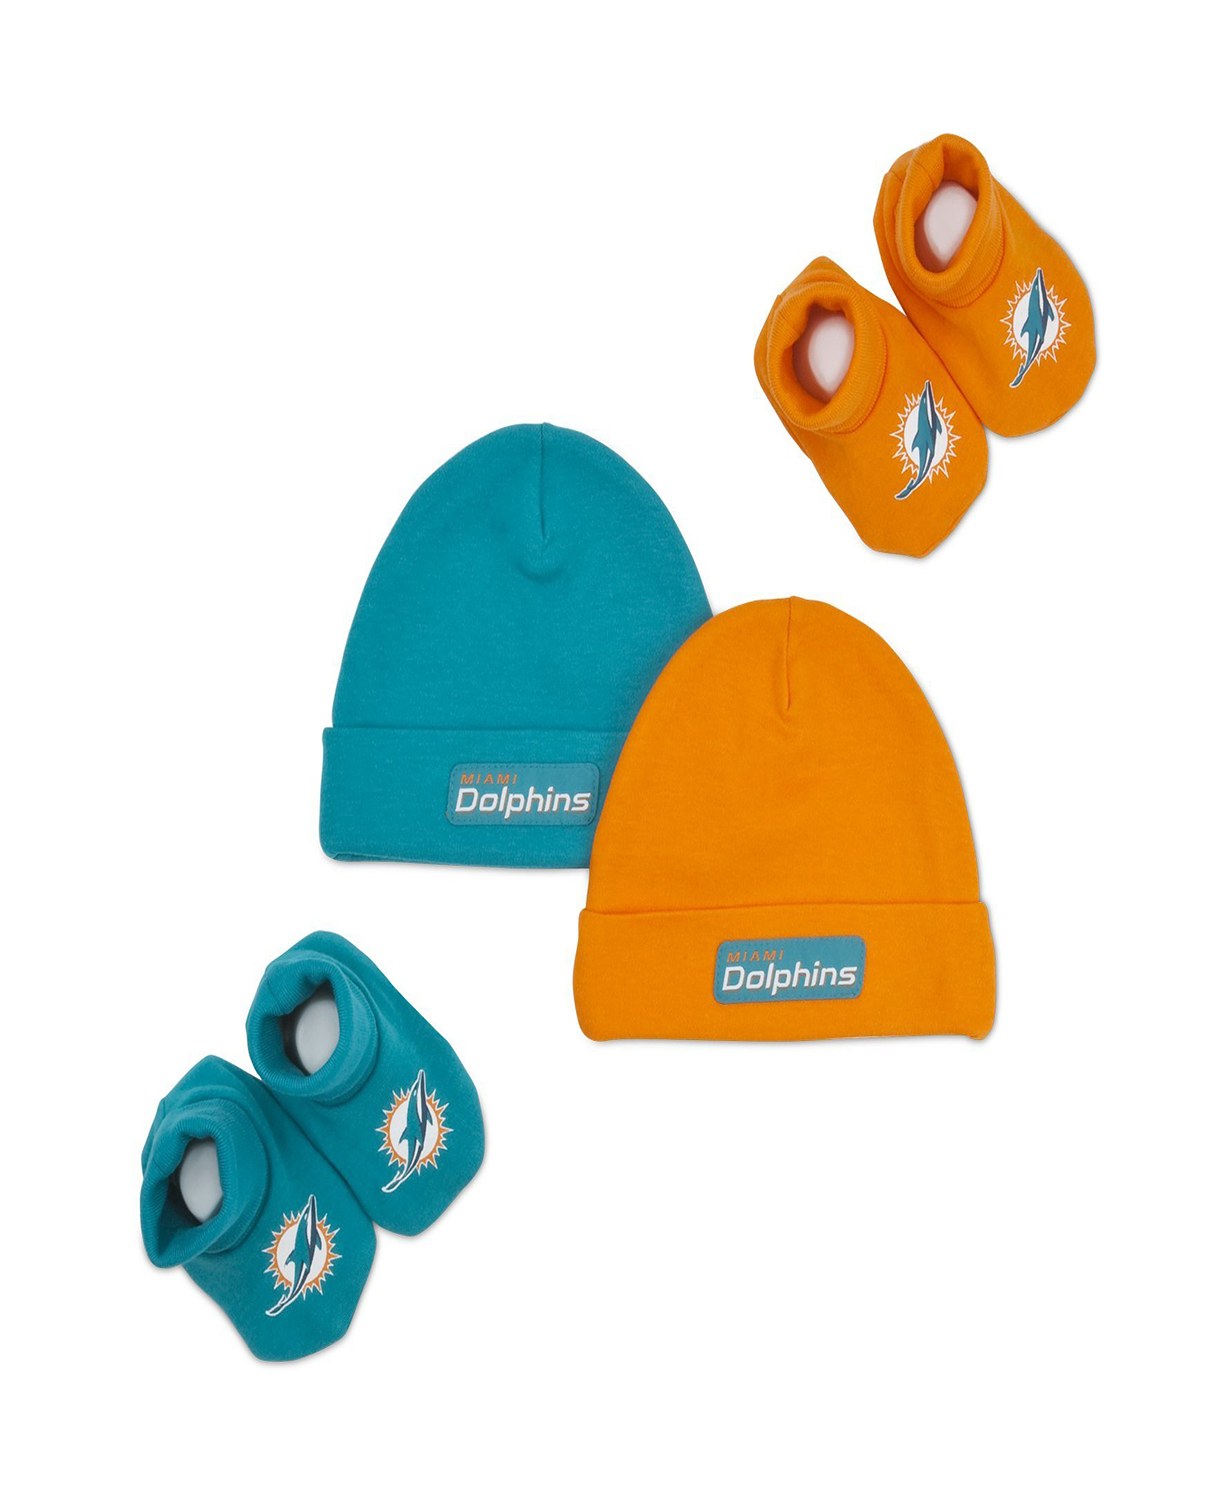 292f316b7 Miami Dolphins Boys 2 Cap and 2 shoes Accessory Set 0-6 Months